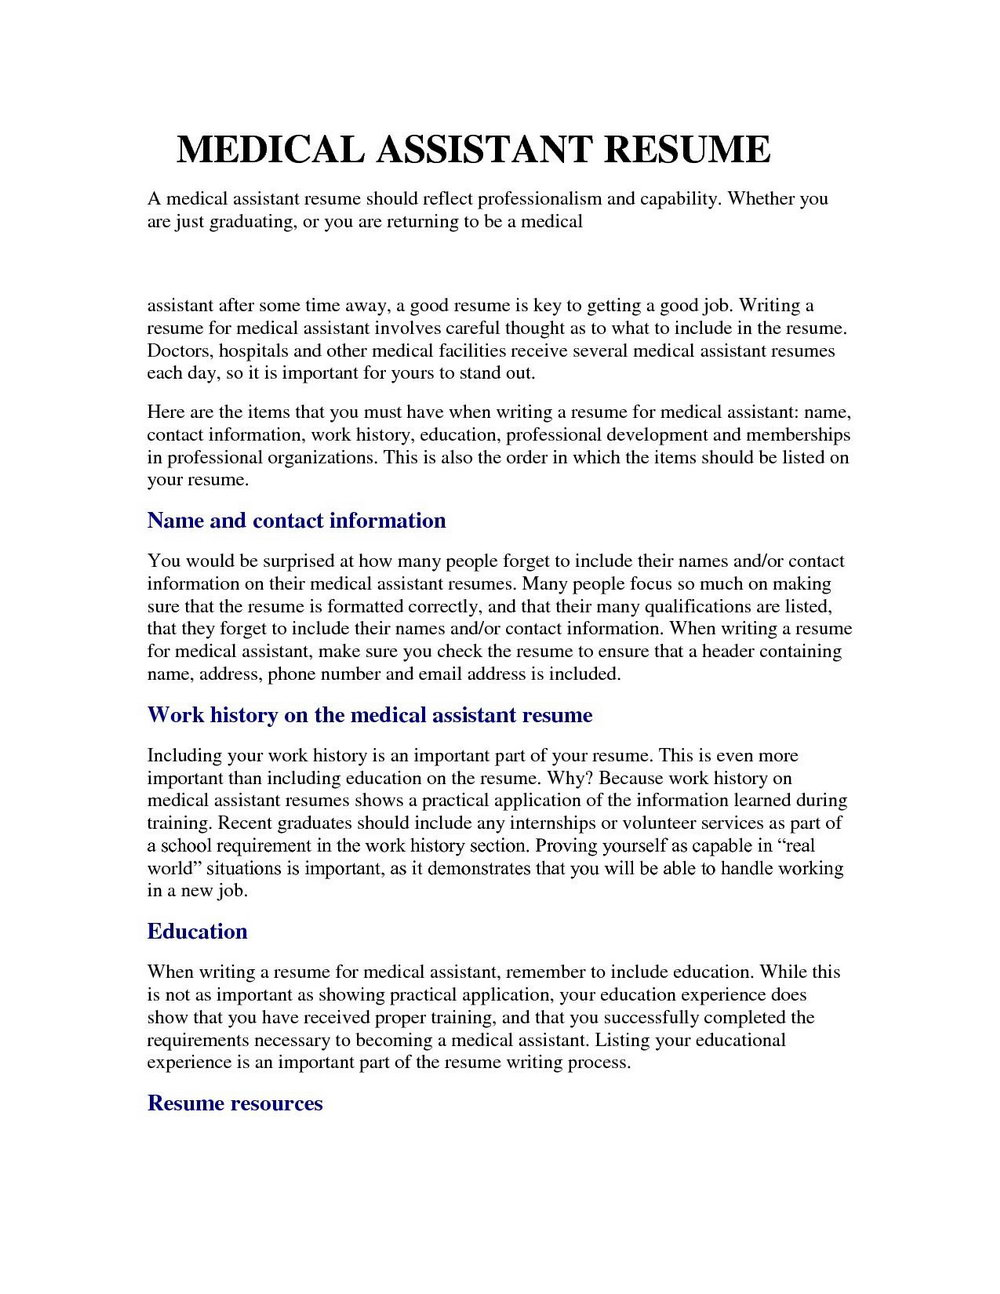 Professional Resume For Medical Assistant